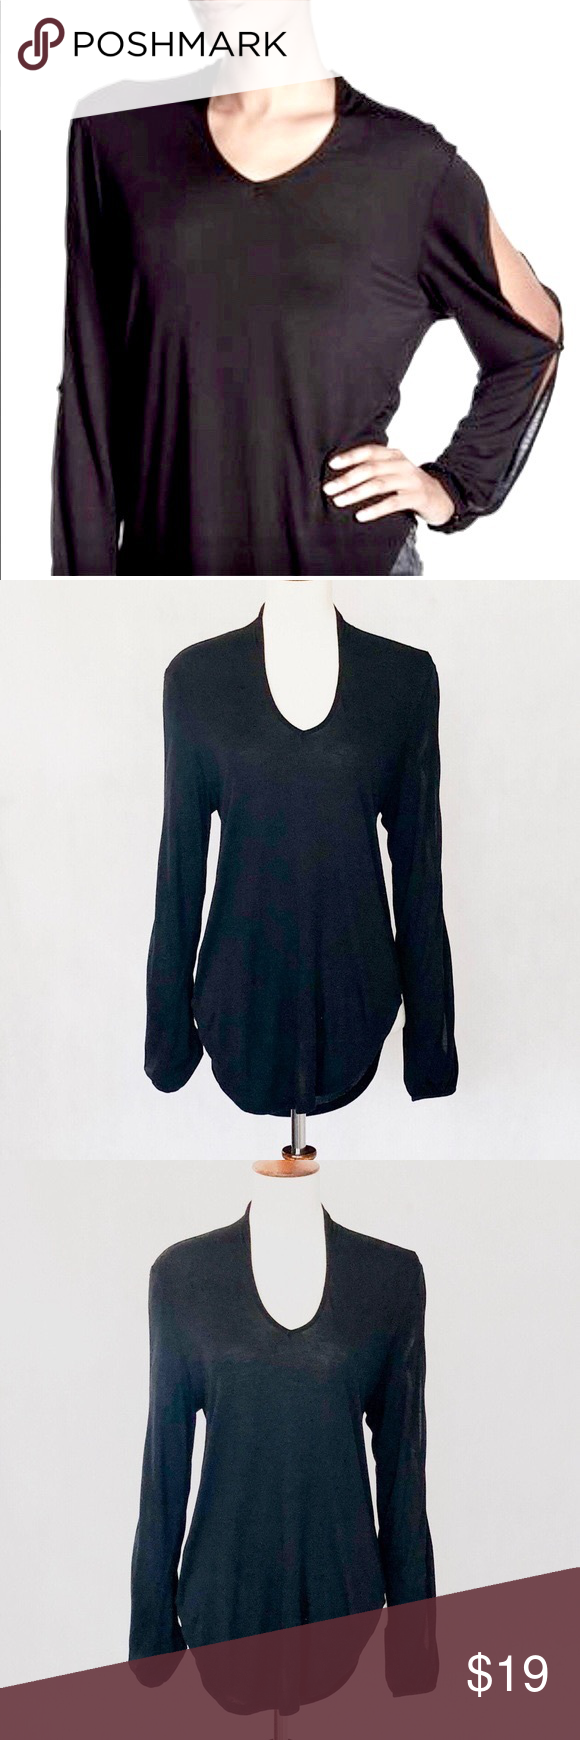 """Haute Hippie Black Split Long Sleeve Knit Top Haute Hippie Split Sleeve Knit Top. Simple yet adorable top, v-neck with small Ruched detail at the back of the neck, long sleeves with 2 button split detail, shirttail hemline. Fabric is 100% modal, measurements are 29"""" long, 19"""" armpit to armpit. Preowned, fabric has softened from wash, consistent with model fabric, two tiny pinholes near front bottom, iron on tape has been applied so pinholes do not show. Price will reflect condition.  G0705 Haute"""